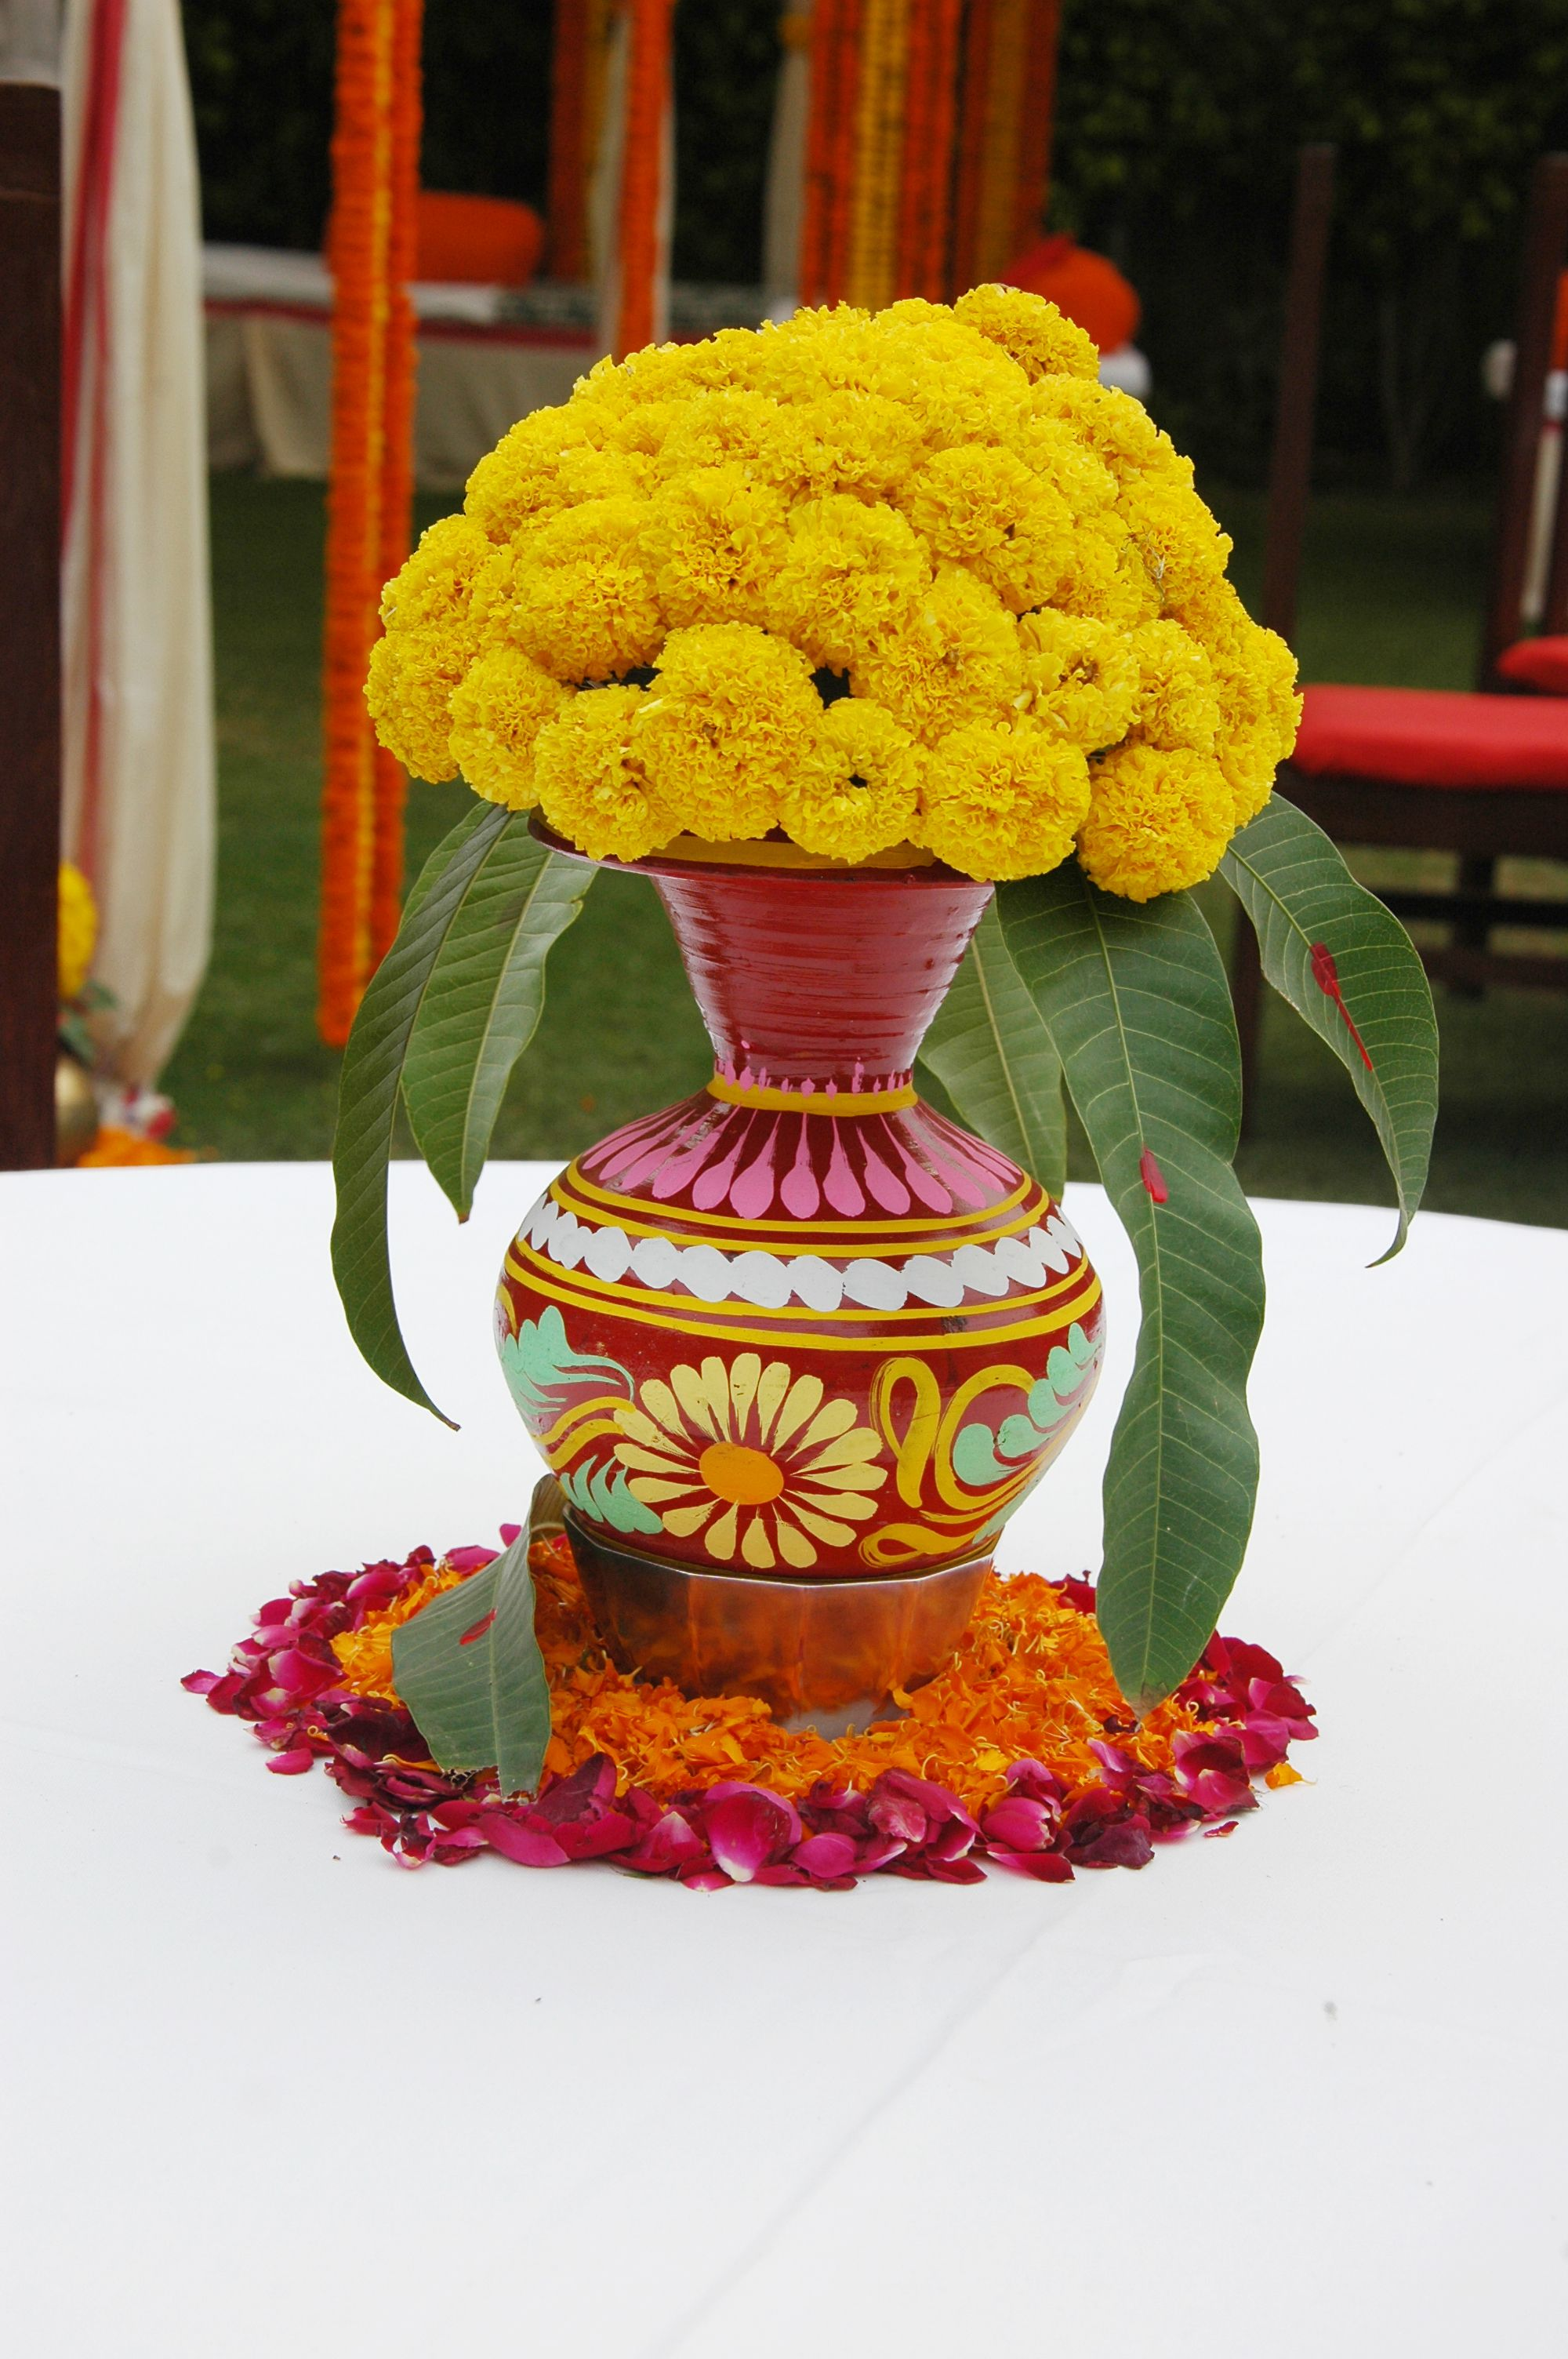 Wedding decorations simple  Pot with simple easily available bright yellow flowers wedding